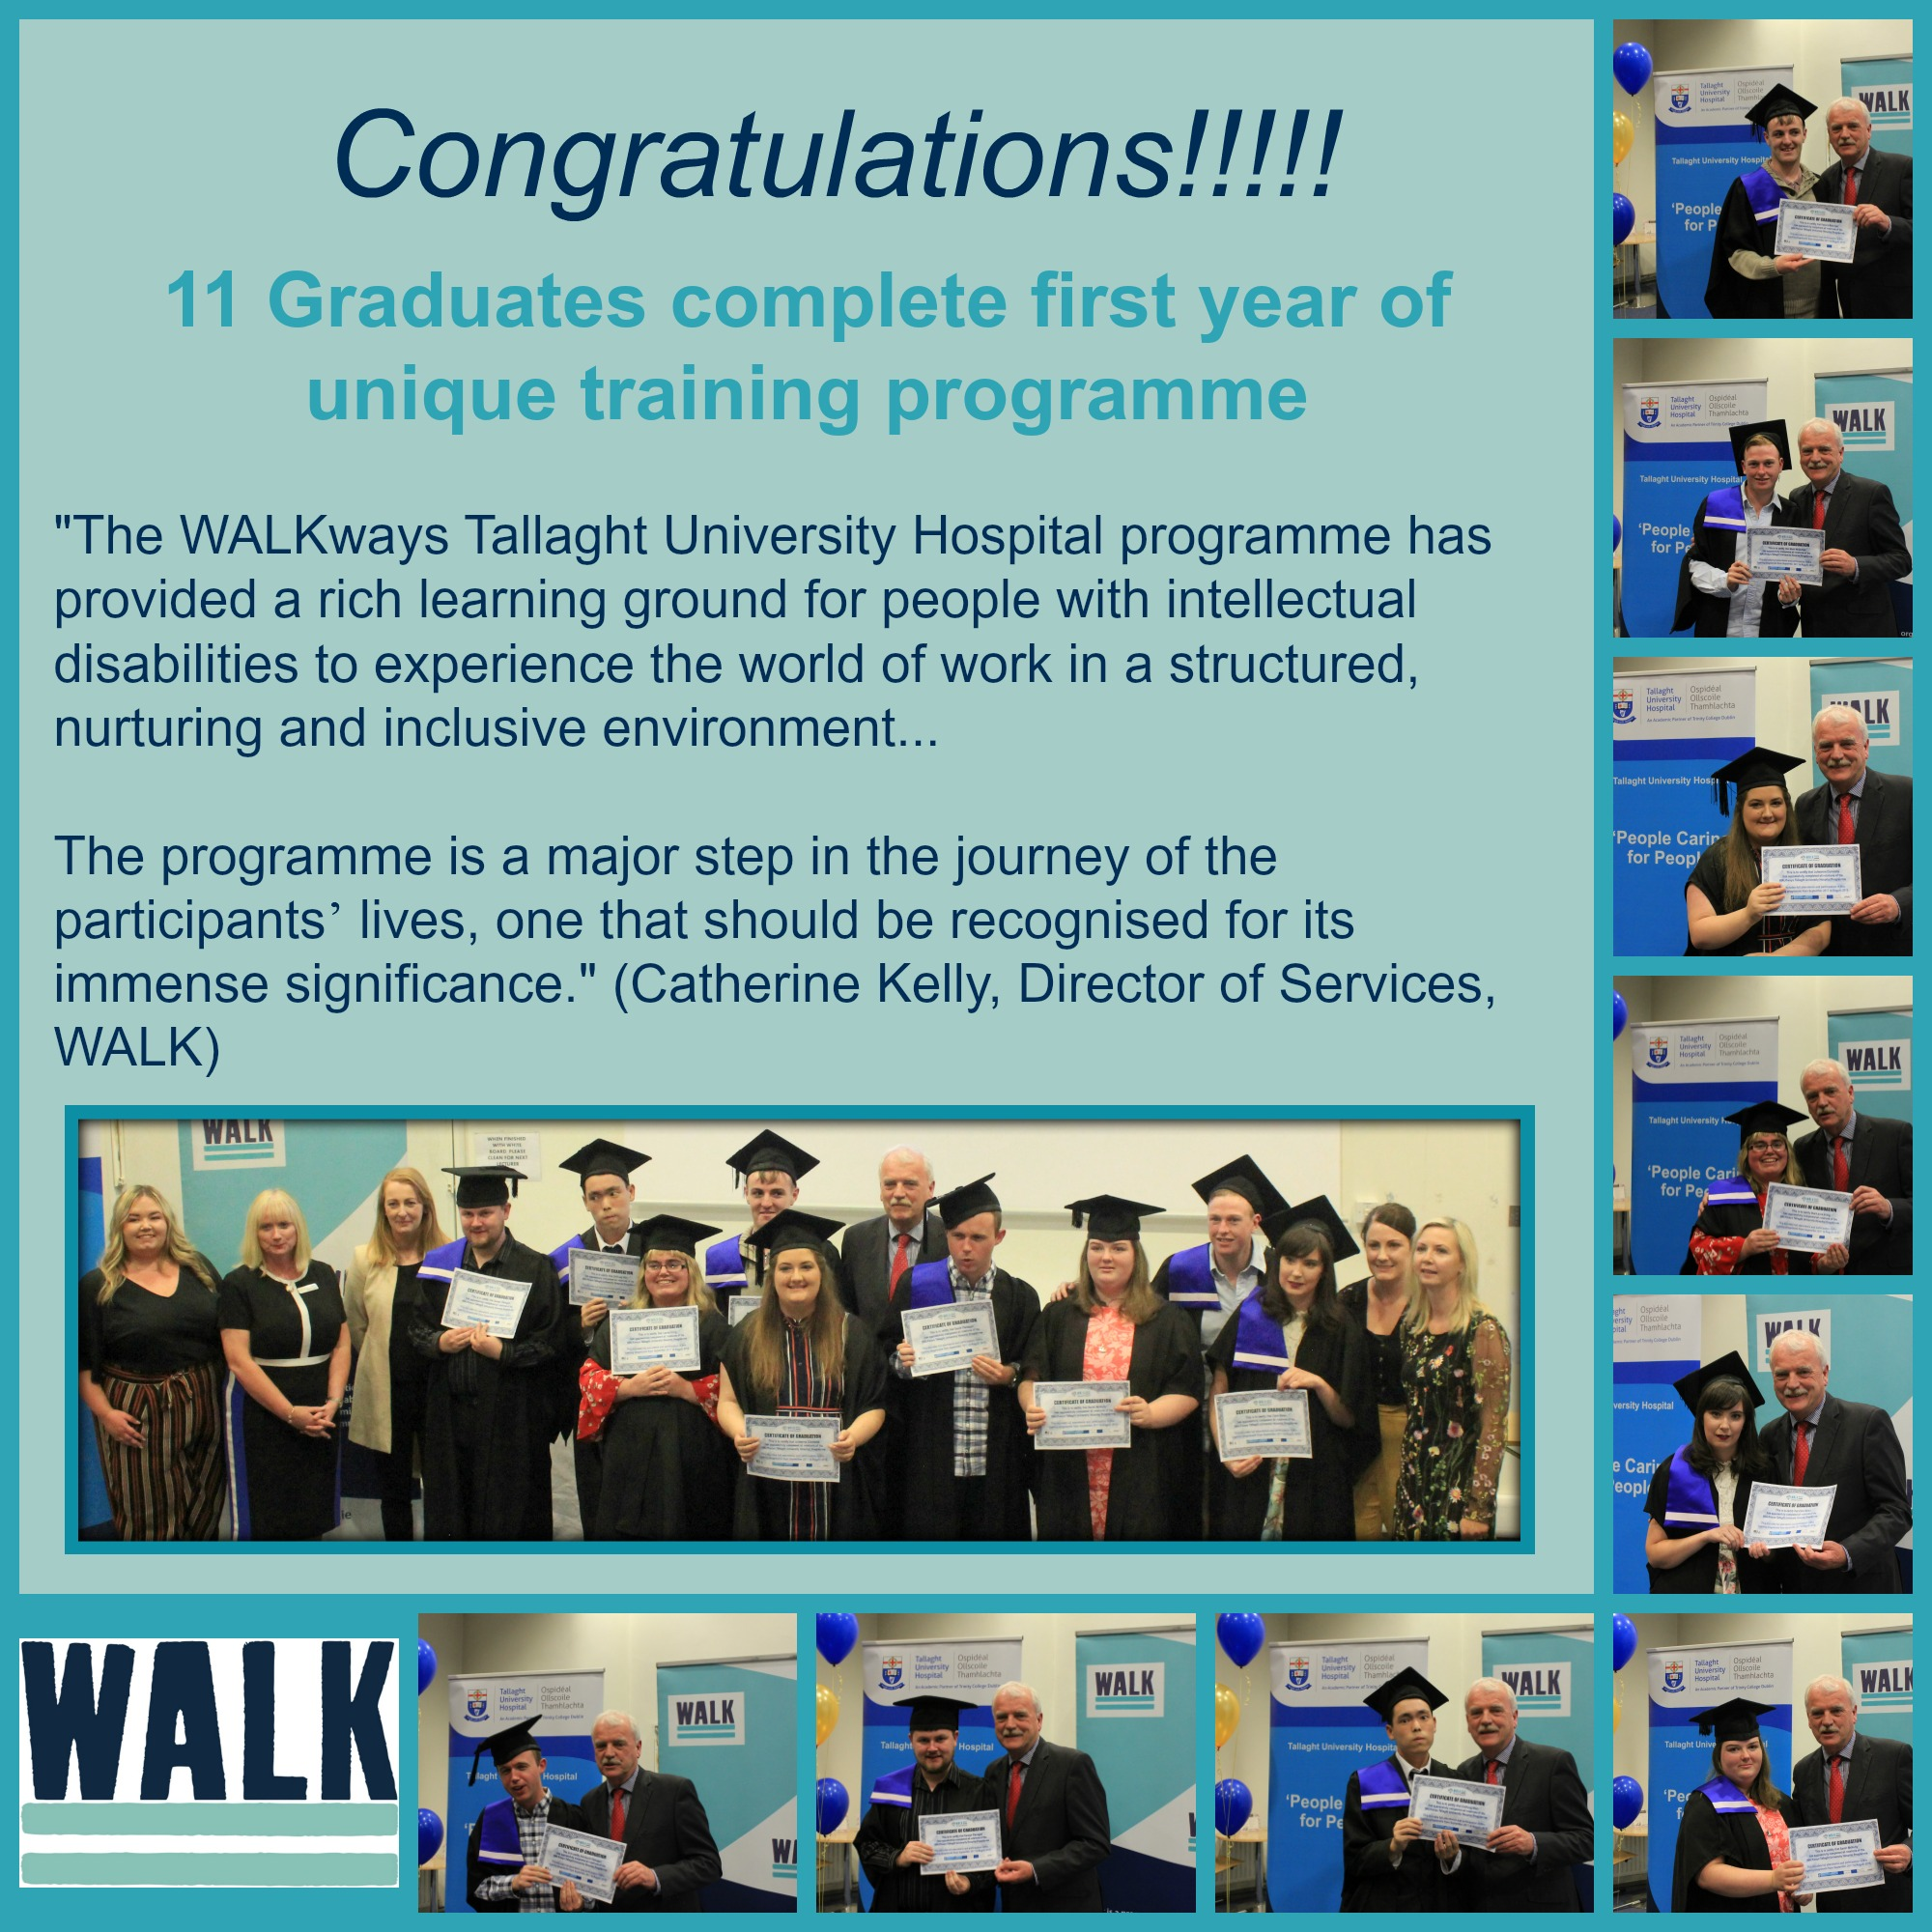 Graduation from WALKways Tallaght University Hospital Programme